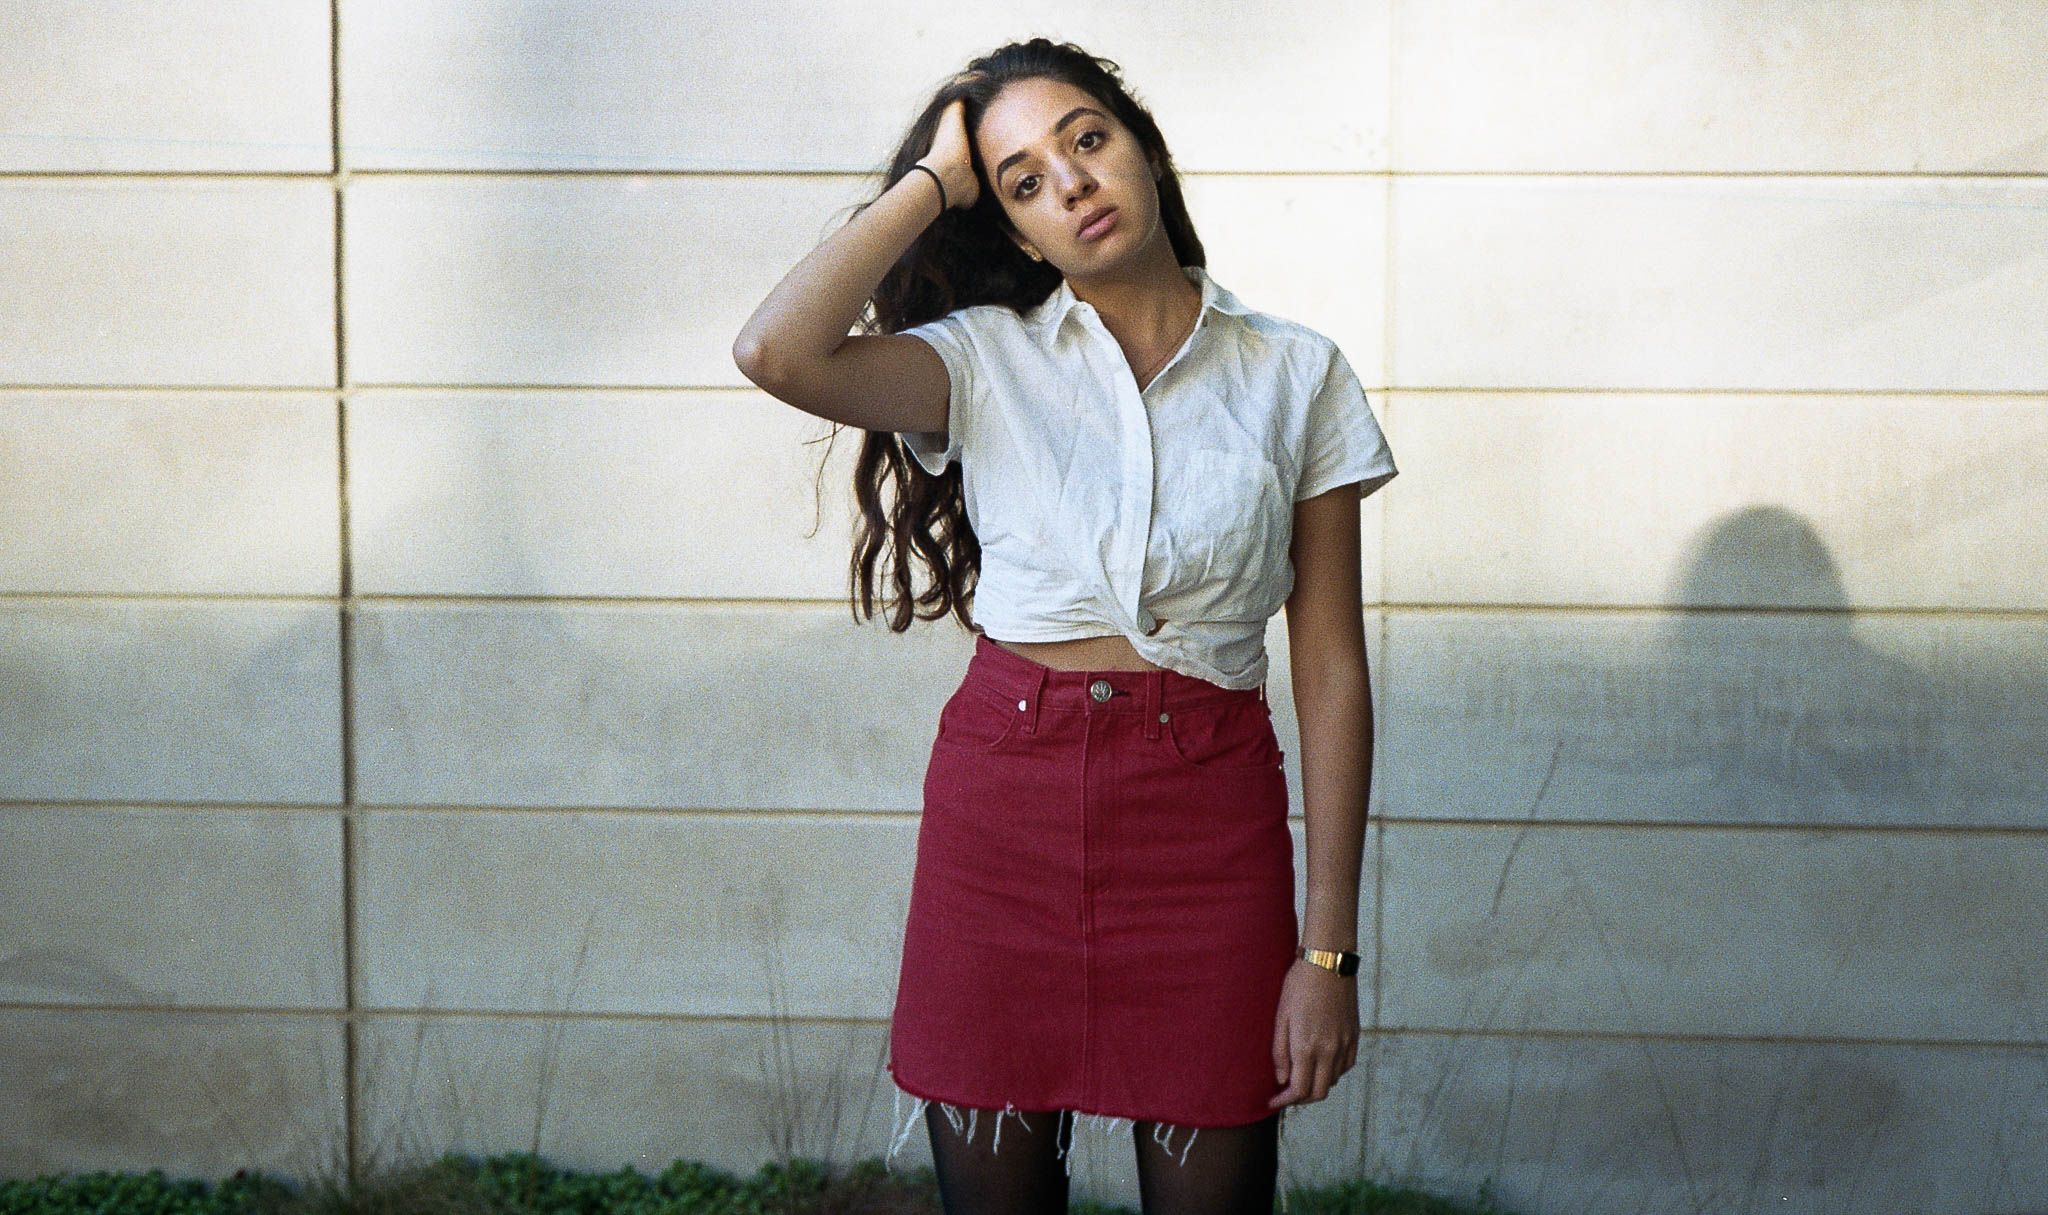 The cropped white button-down is from Free People, red skirt from Rag and Bone. The suede, brown, knee-high boots are from Urban Outfitters. The accessories are a hamsa (evil eye) necklace, tiny gold hoop earrings, gold casio watch